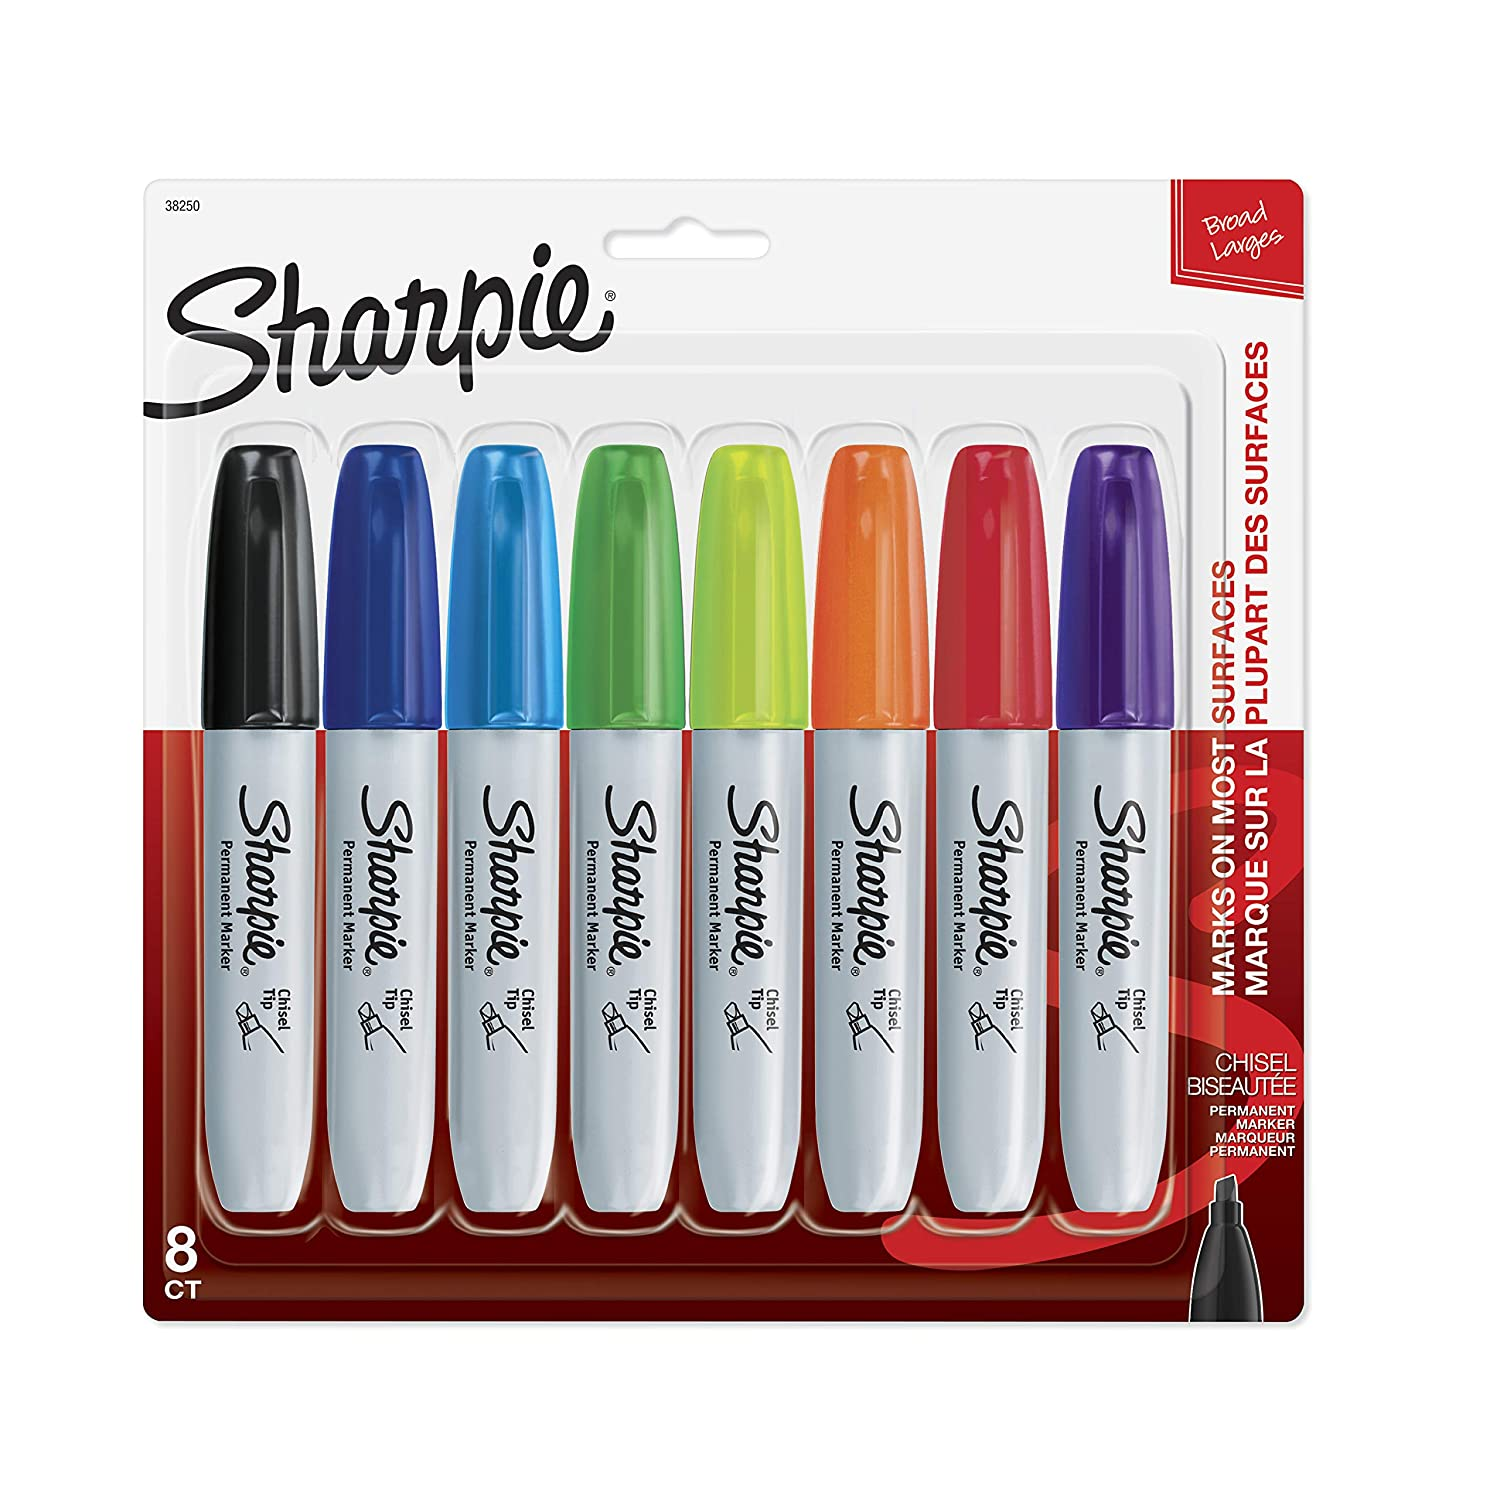 Sharpie 38250PP Permanent Markers, Chisel Tip, Assorted Colors, 8-Count